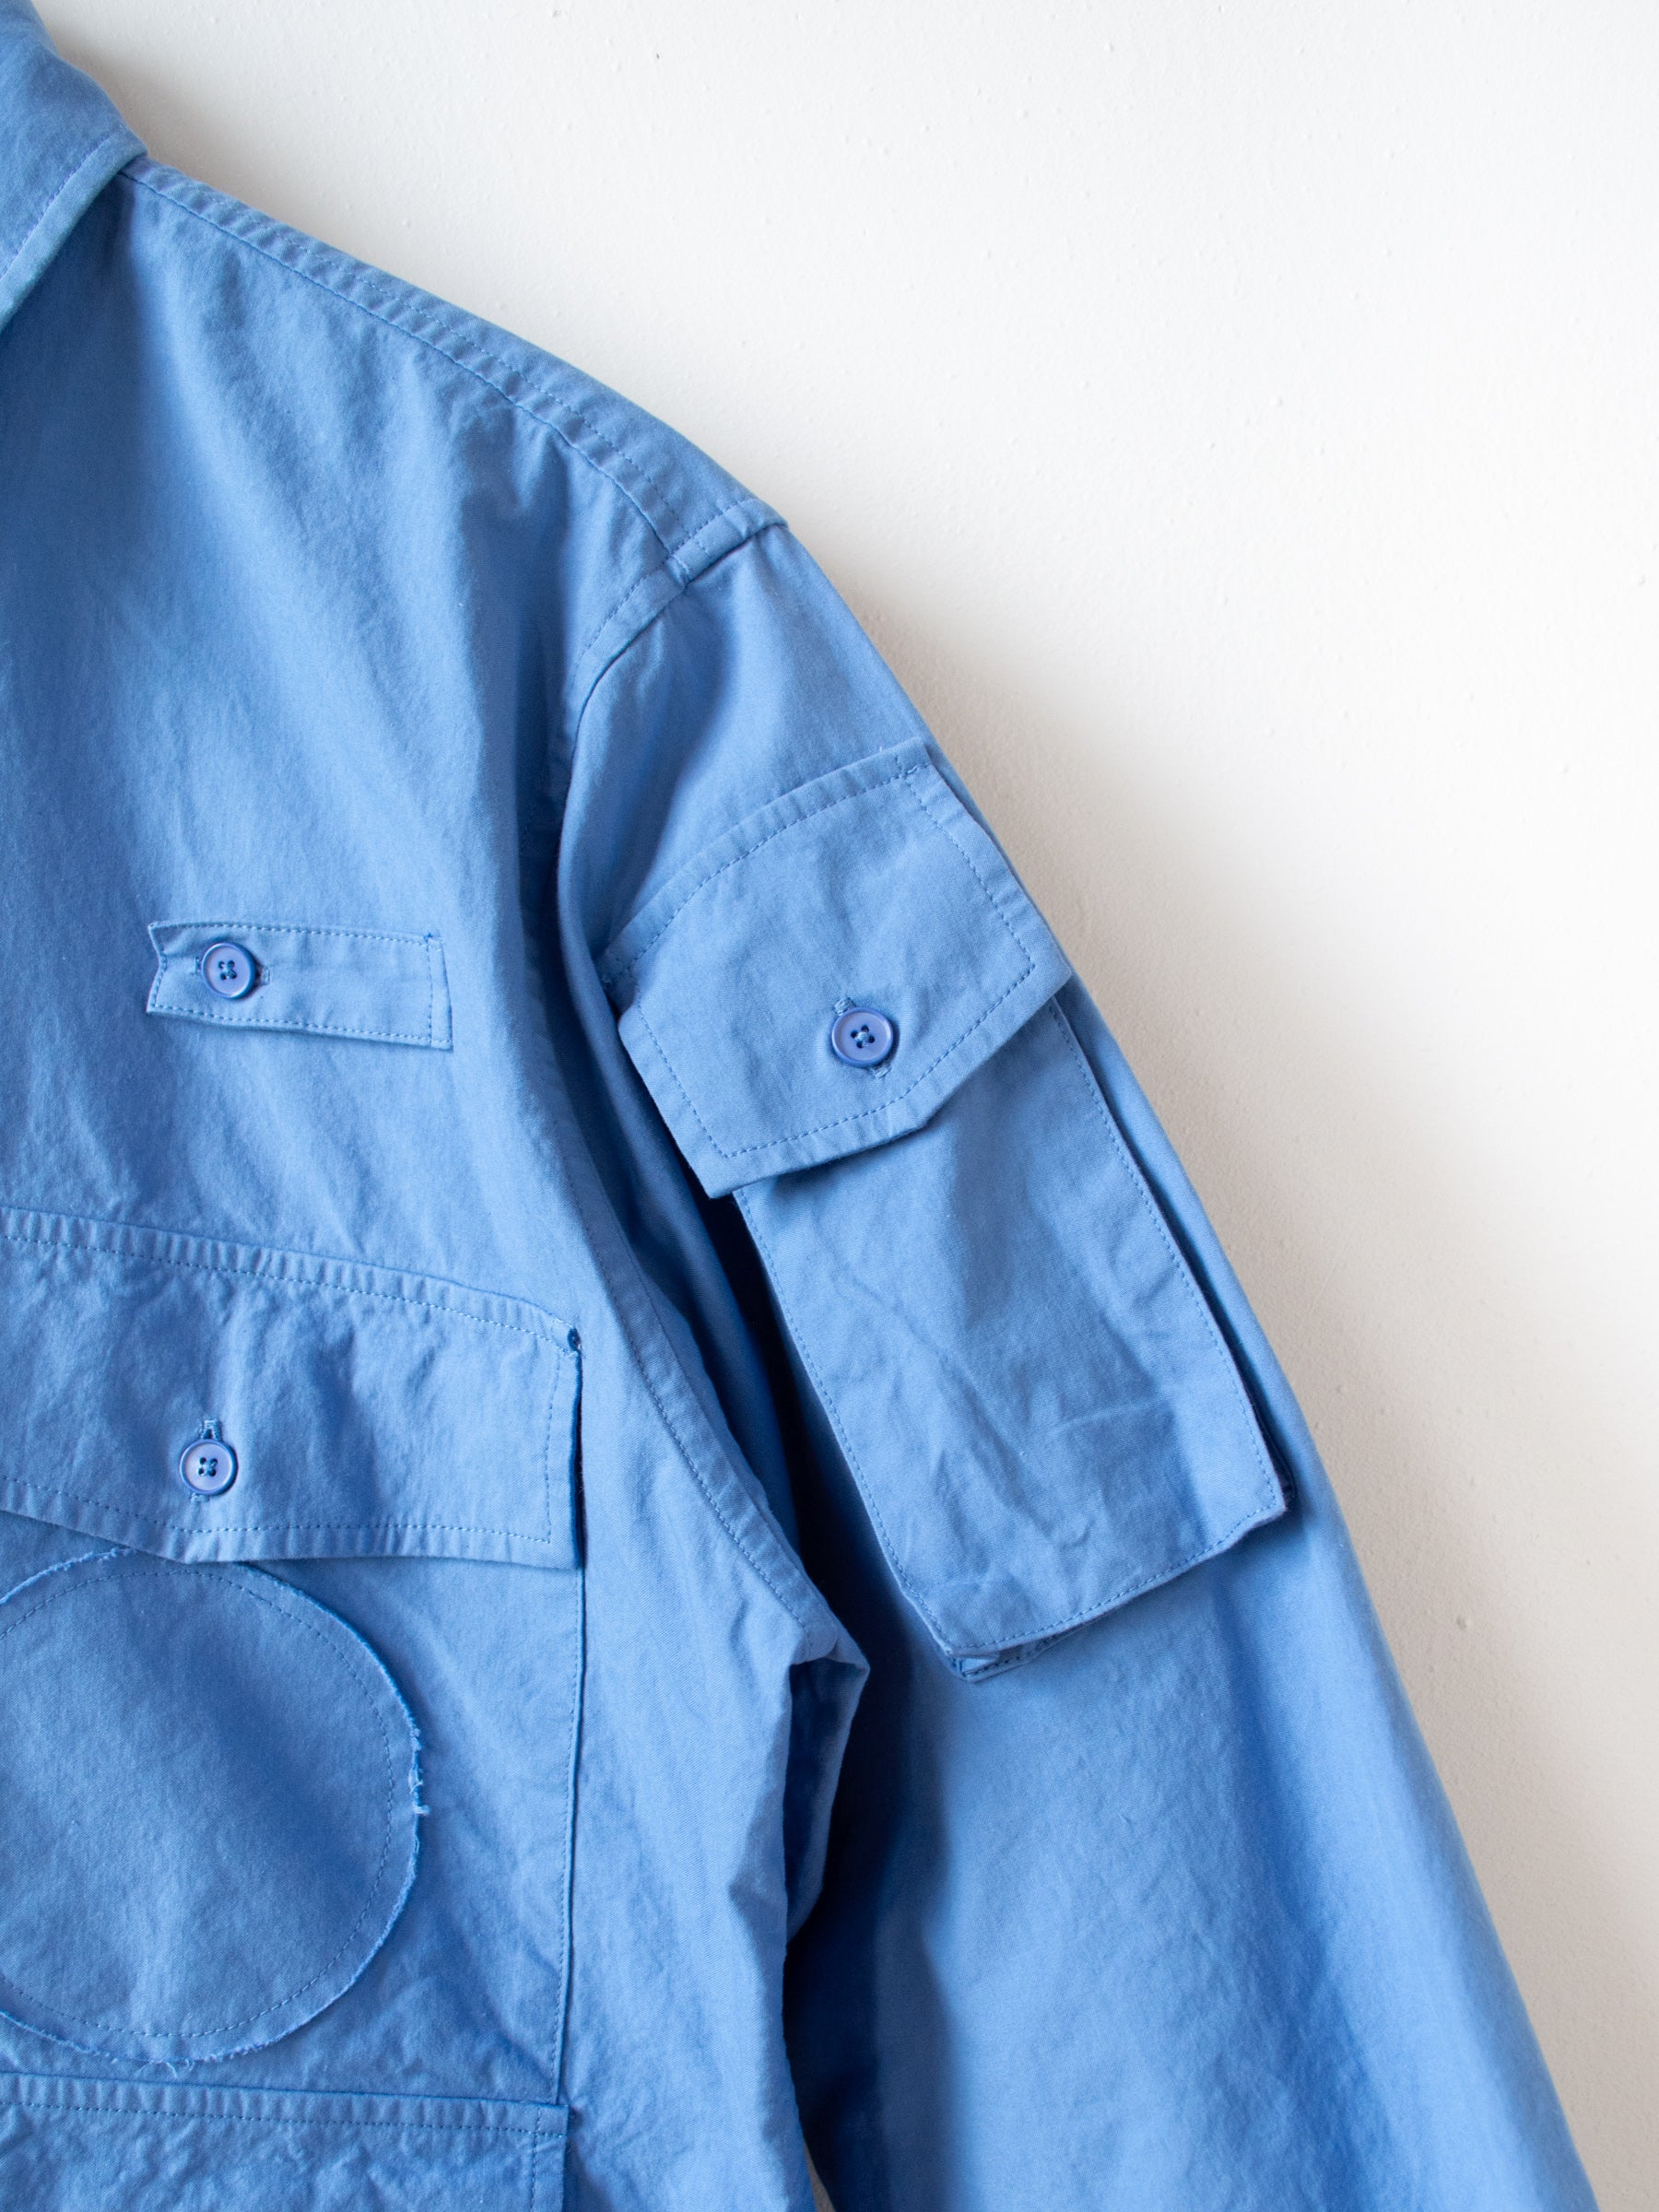 Fishing Shirt - Blue